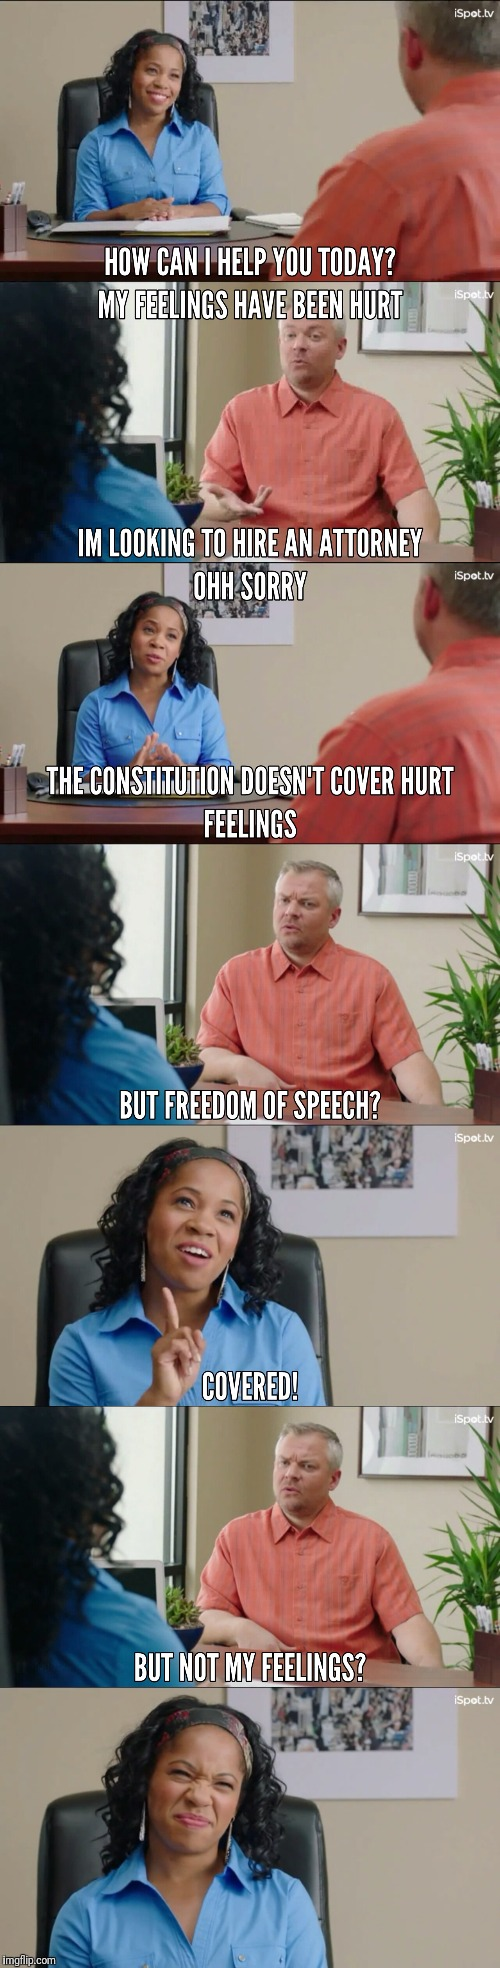 Happy 4th! Enjoy your freedoms! | image tagged in constitution,freedom,feels | made w/ Imgflip meme maker